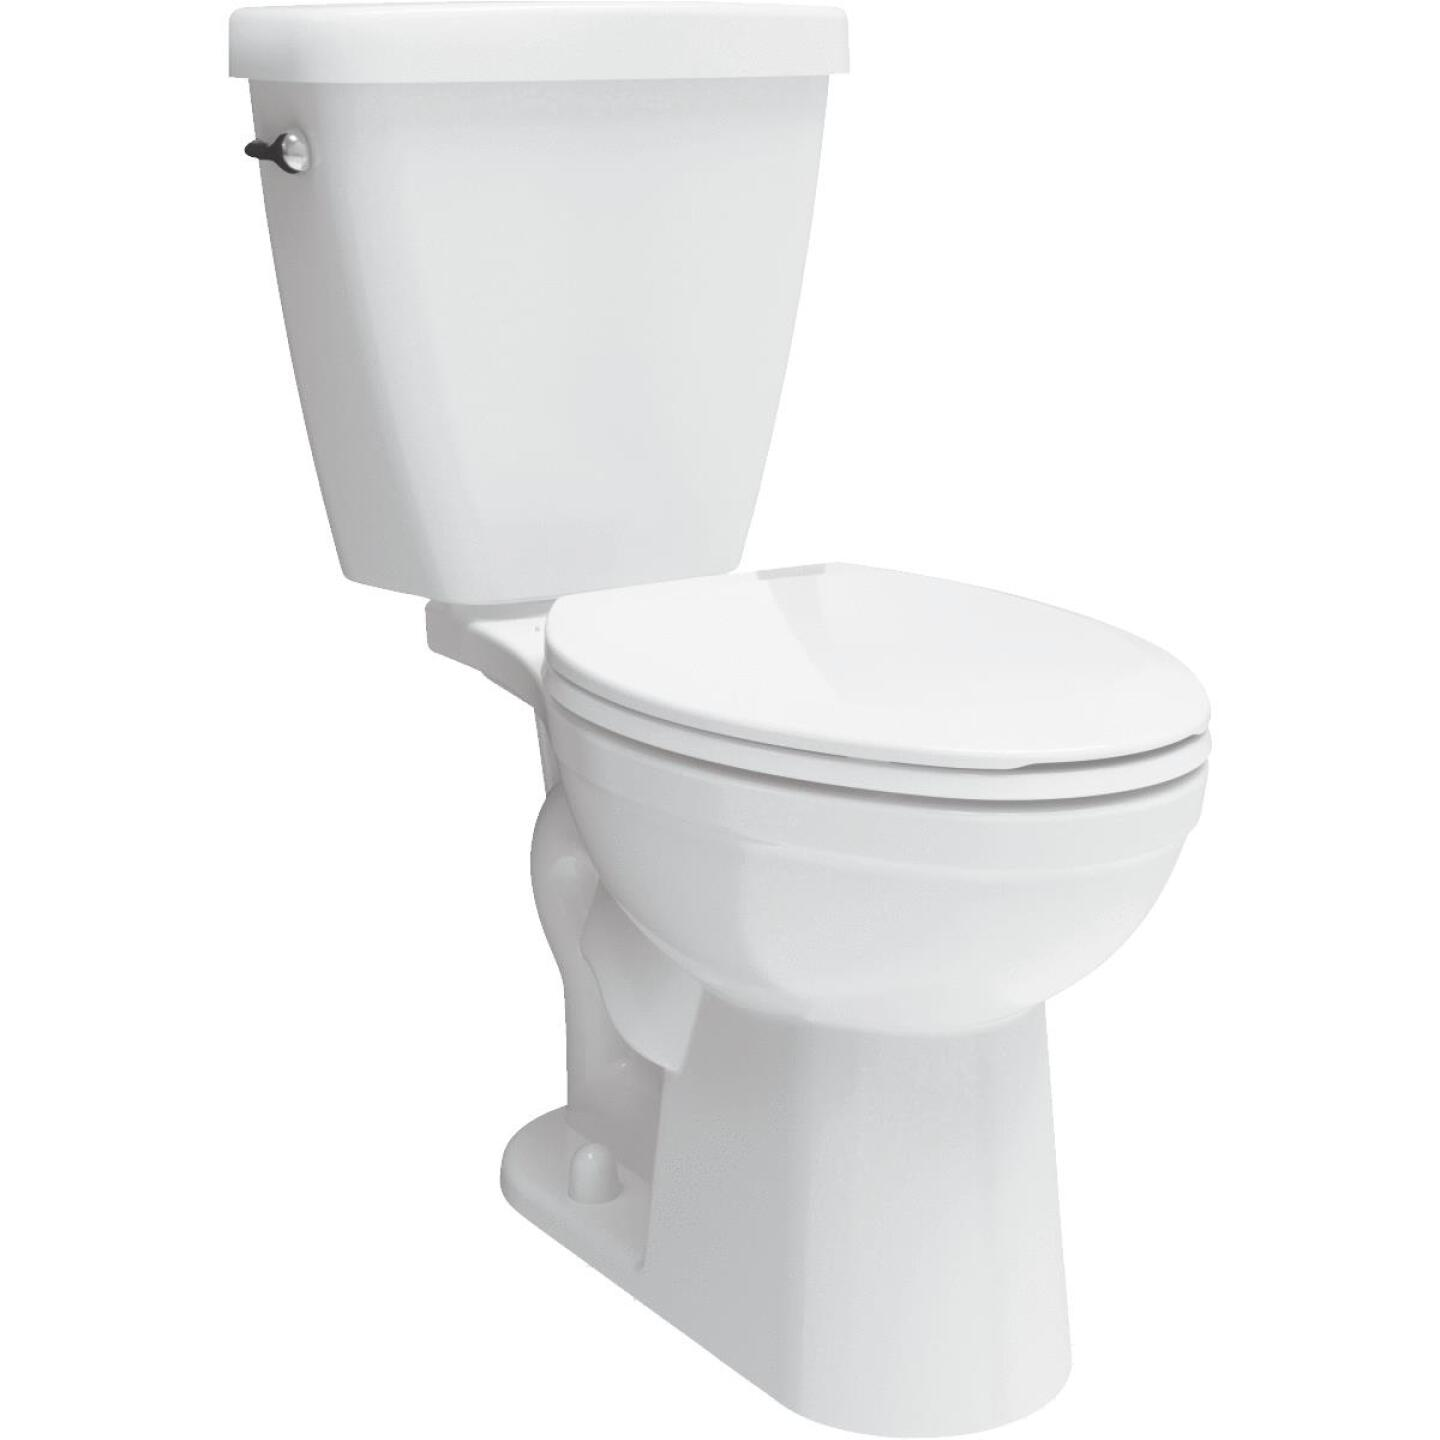 Delta Prelude White Elongated Bowl 1.28 GPF Toilet Image 1